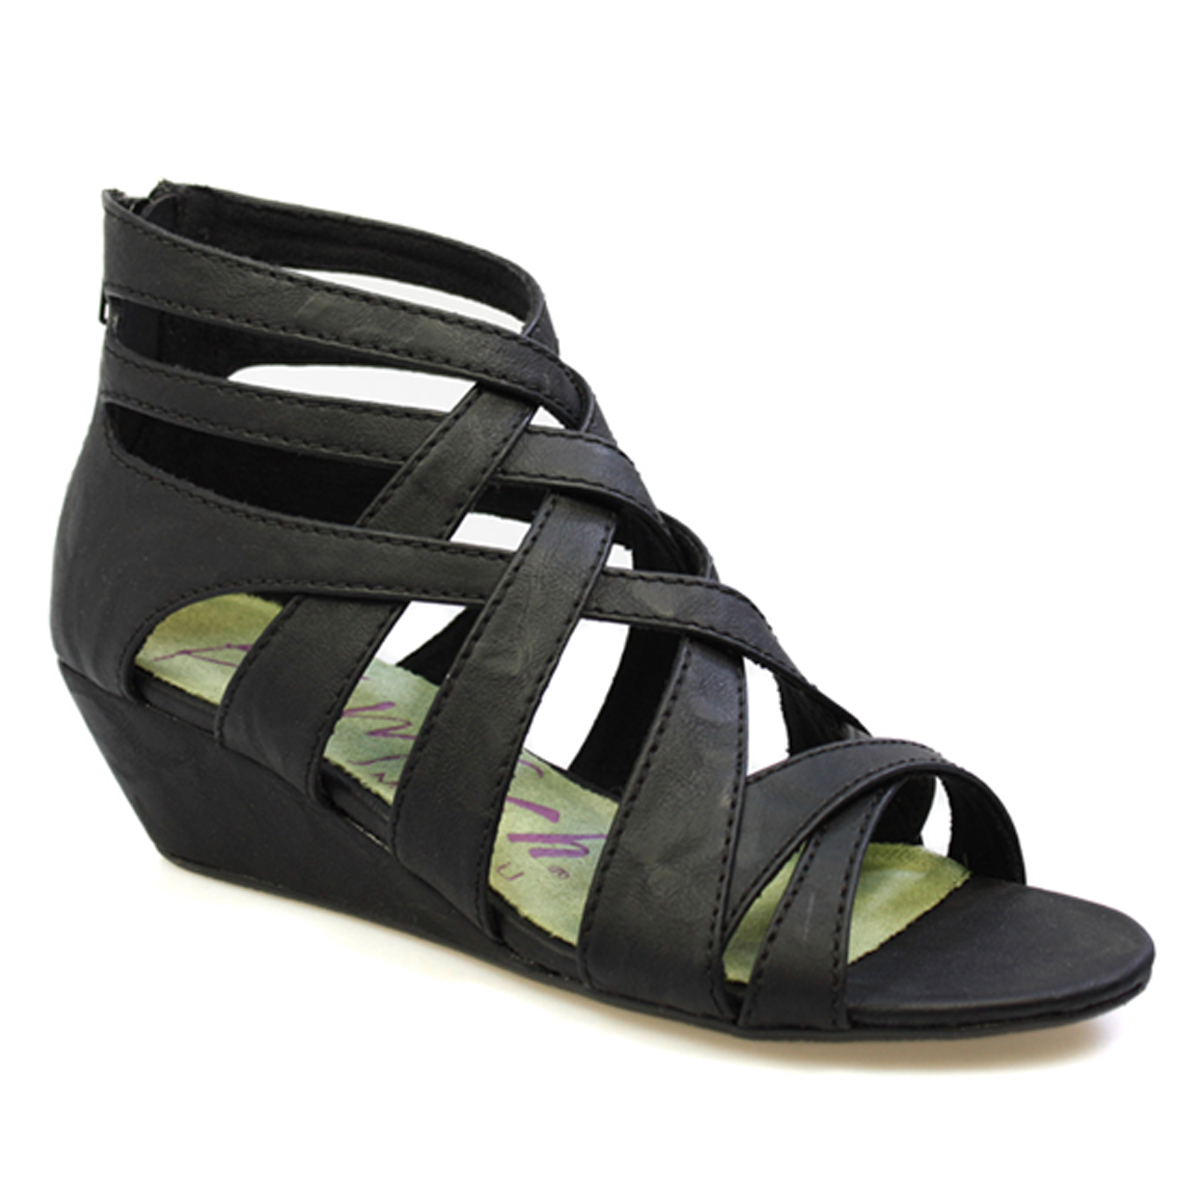 Black Strap Wedge Shoes